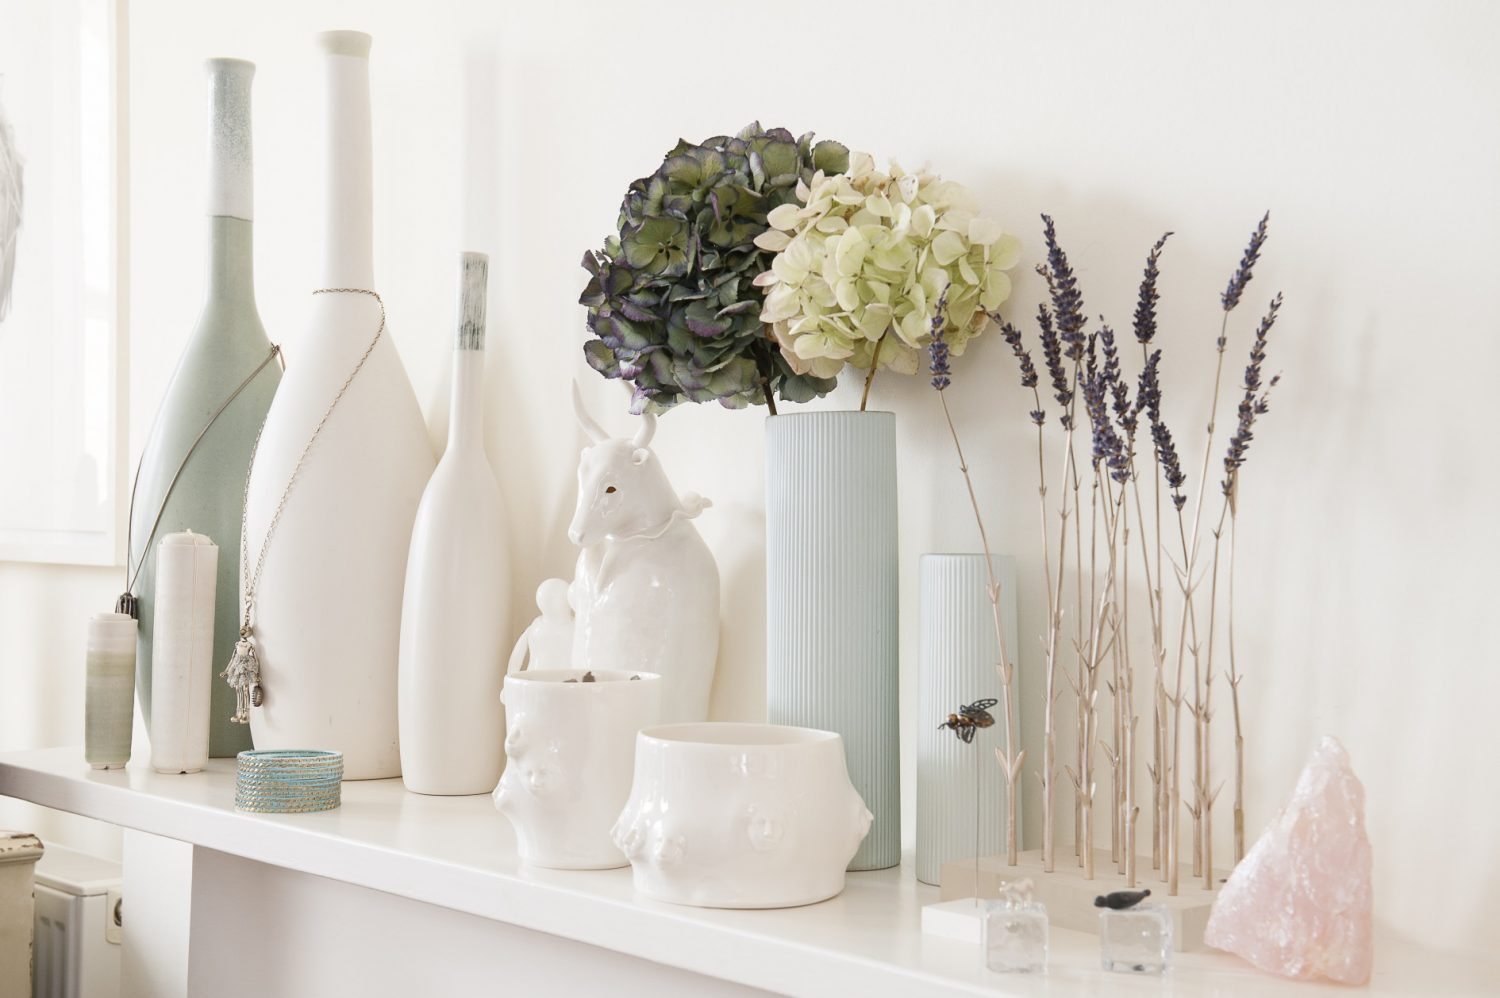 Rose quartz and lavender sits alongside ceramics on the mantlepiece